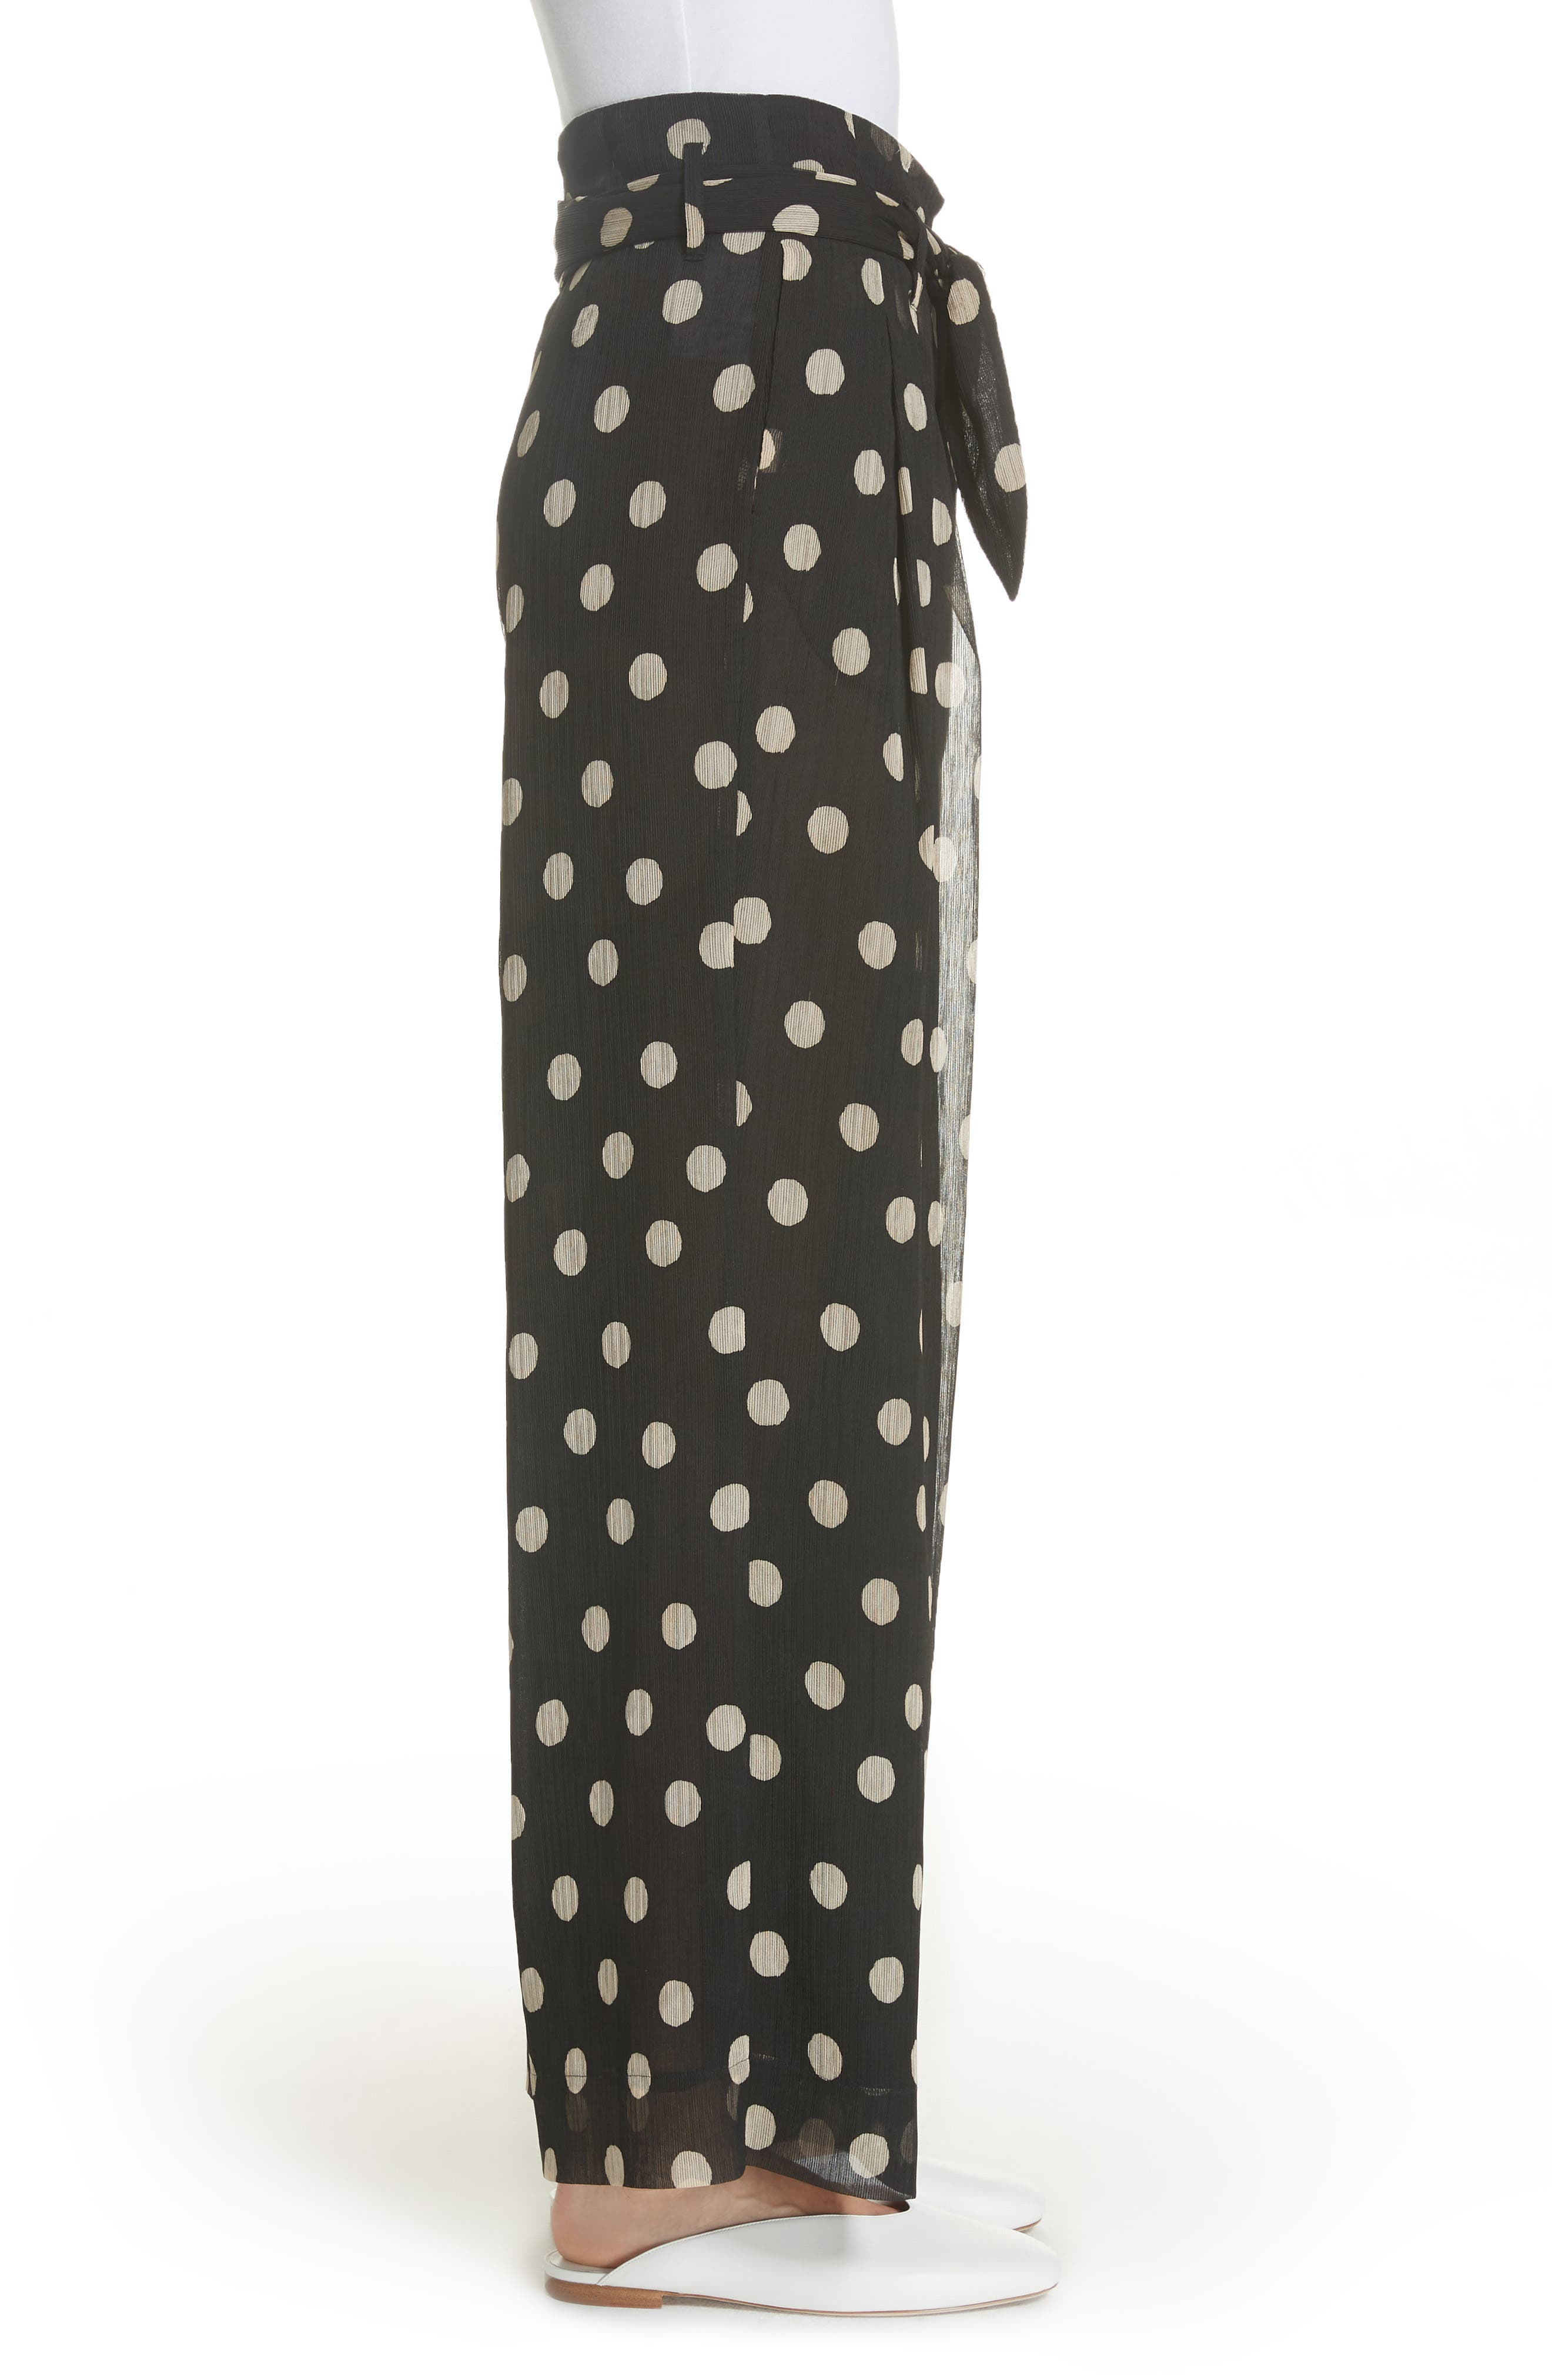 Nevada Polka Dot Chiffon Pants,                             Alternate thumbnail 3, color,                             POLKA DOT